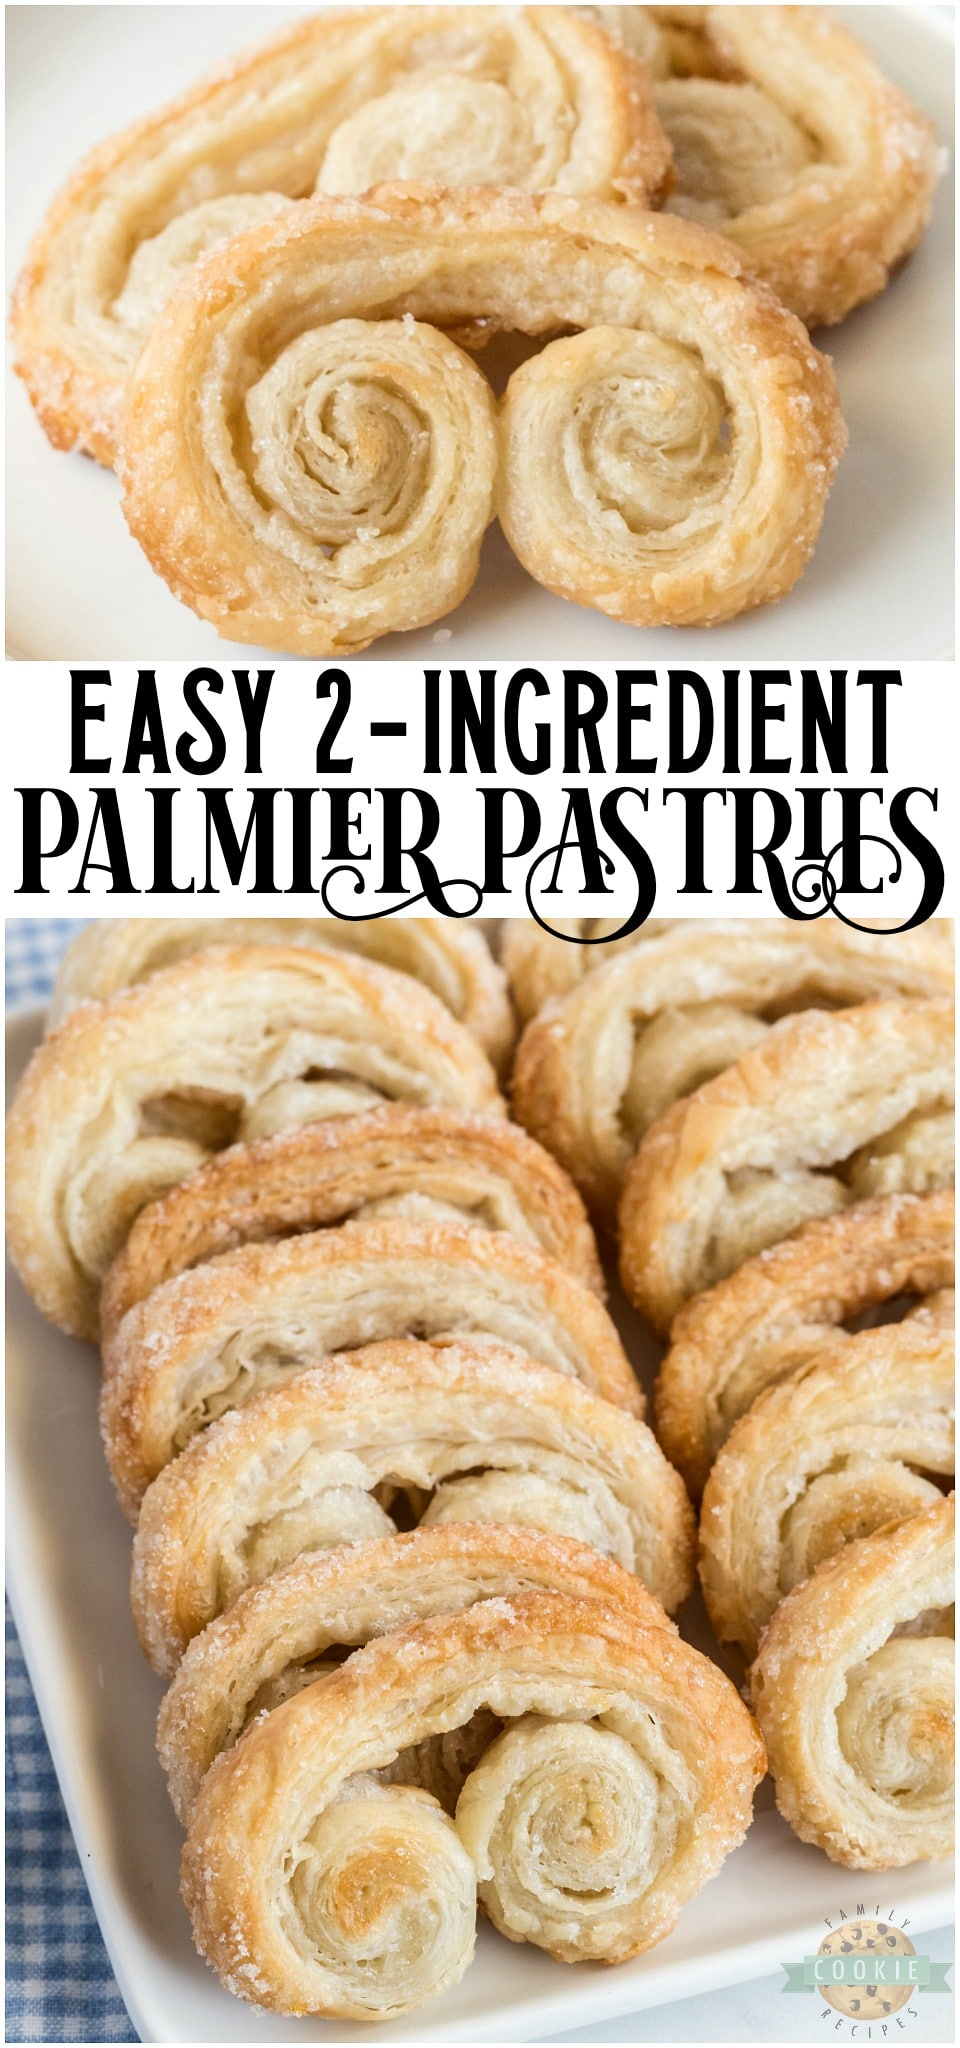 Easy Palmiers recipe made with just 2 ingredients: puff pastry and sugar! Enjoy buttery, flaky homemade Palmiers in just 30 minutes! Anyone can make these fancy looking cookies! #cookies #elephantears #palmiers #cookierecipe #fancy #French #pastry #recipe from FAMILY COOKIE RECIPES via @familycookierecipes